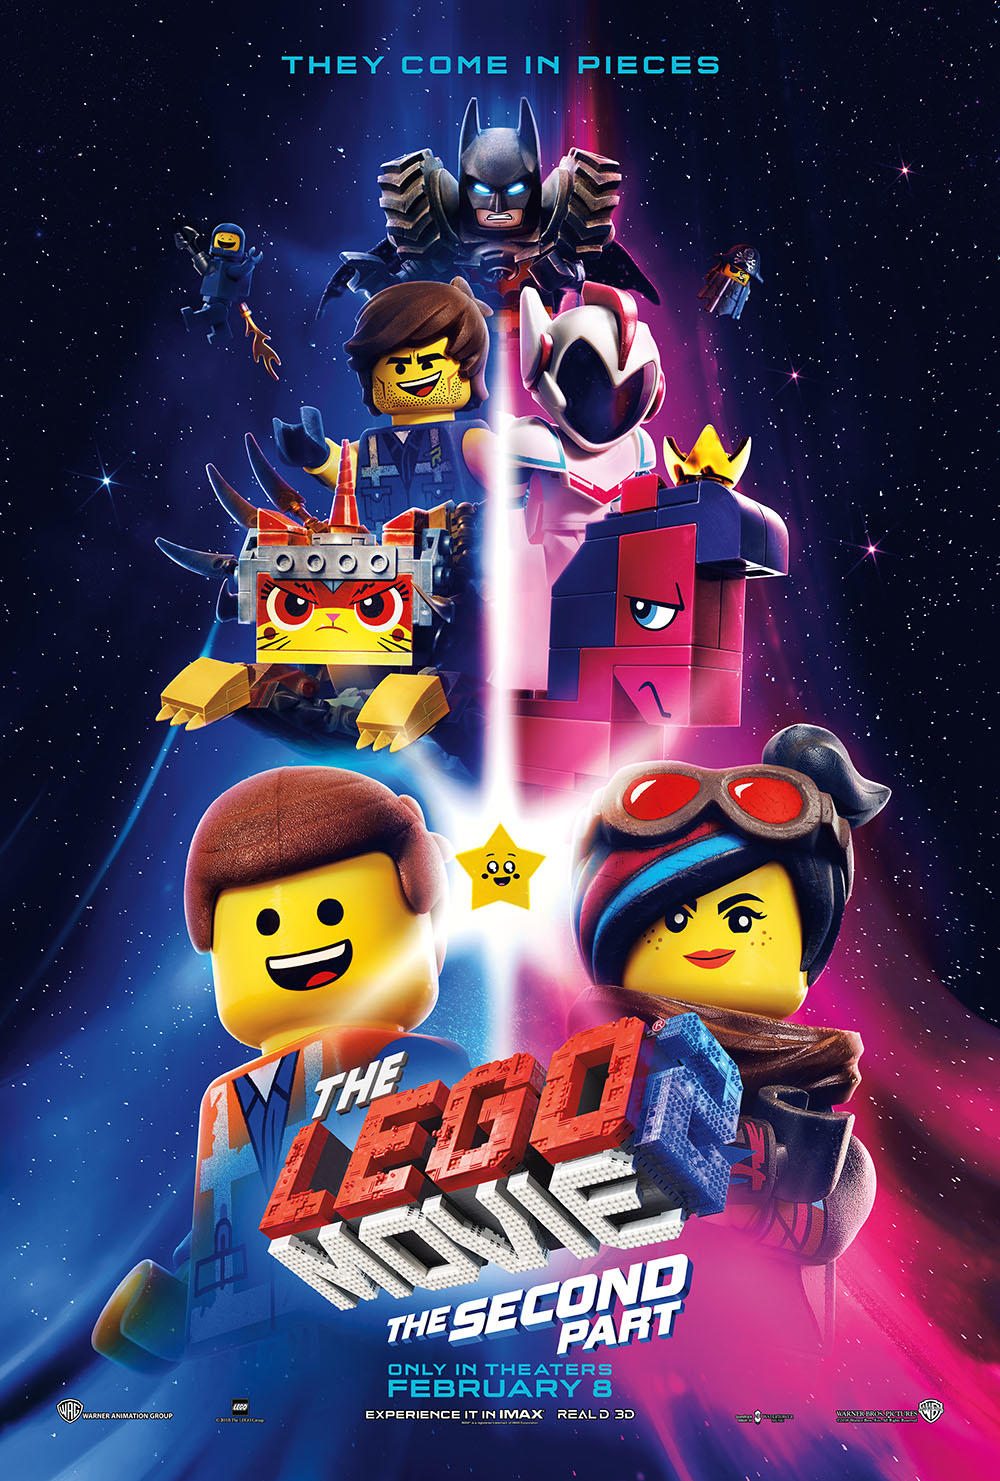 The Lego Movie 2: The Second Part Early Access Screenings poster art